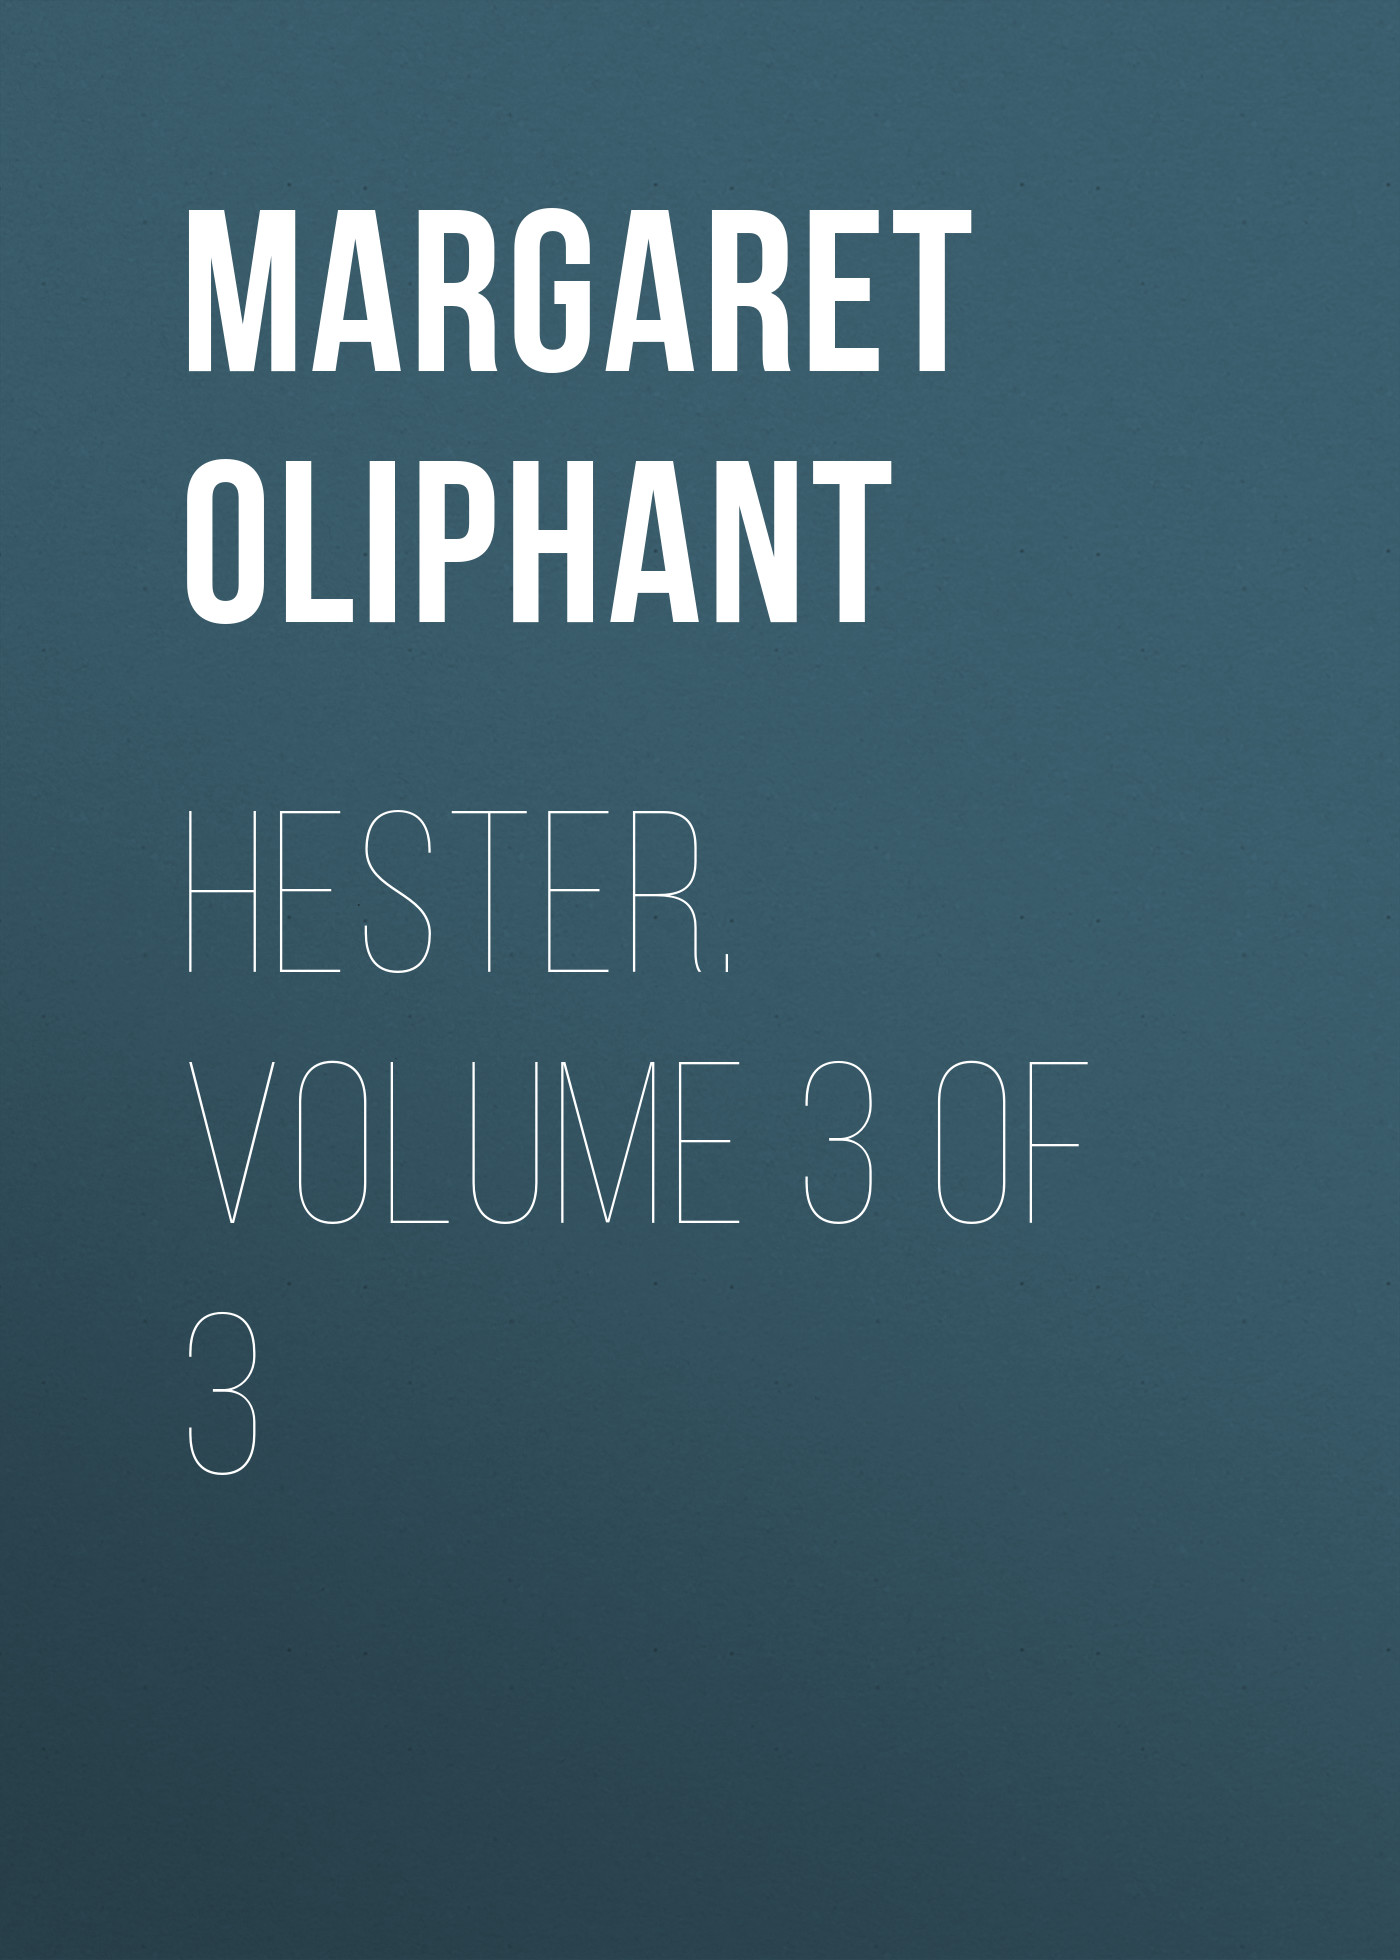 Маргарет Олифант Hester. Volume 3 of 3 маргарет олифант the house on the moor volume 3